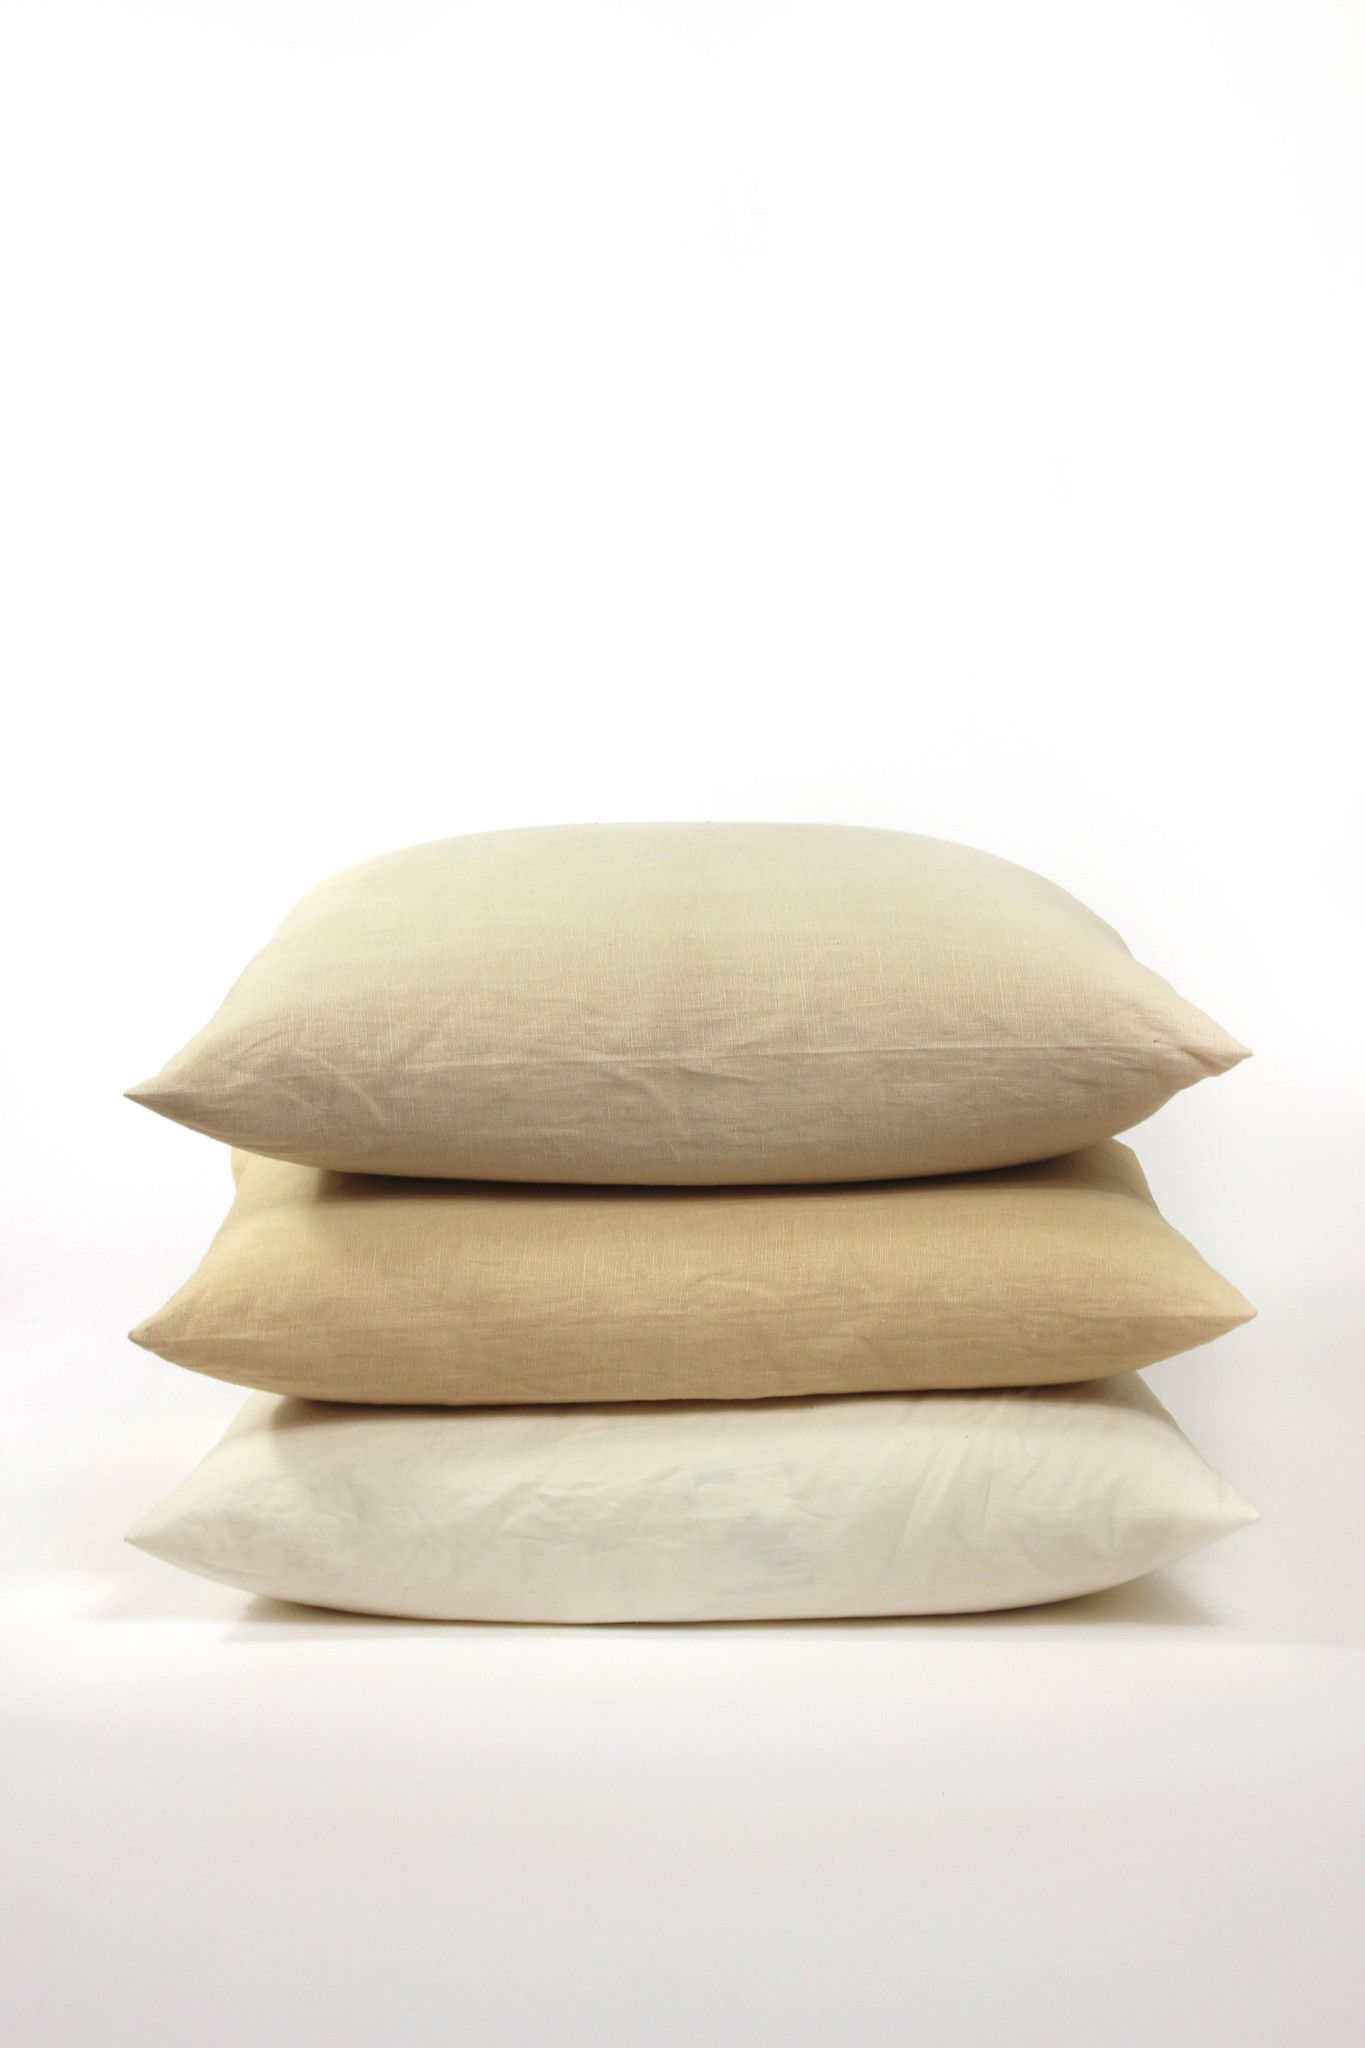 STACKING PILLOWS // sophie buhai